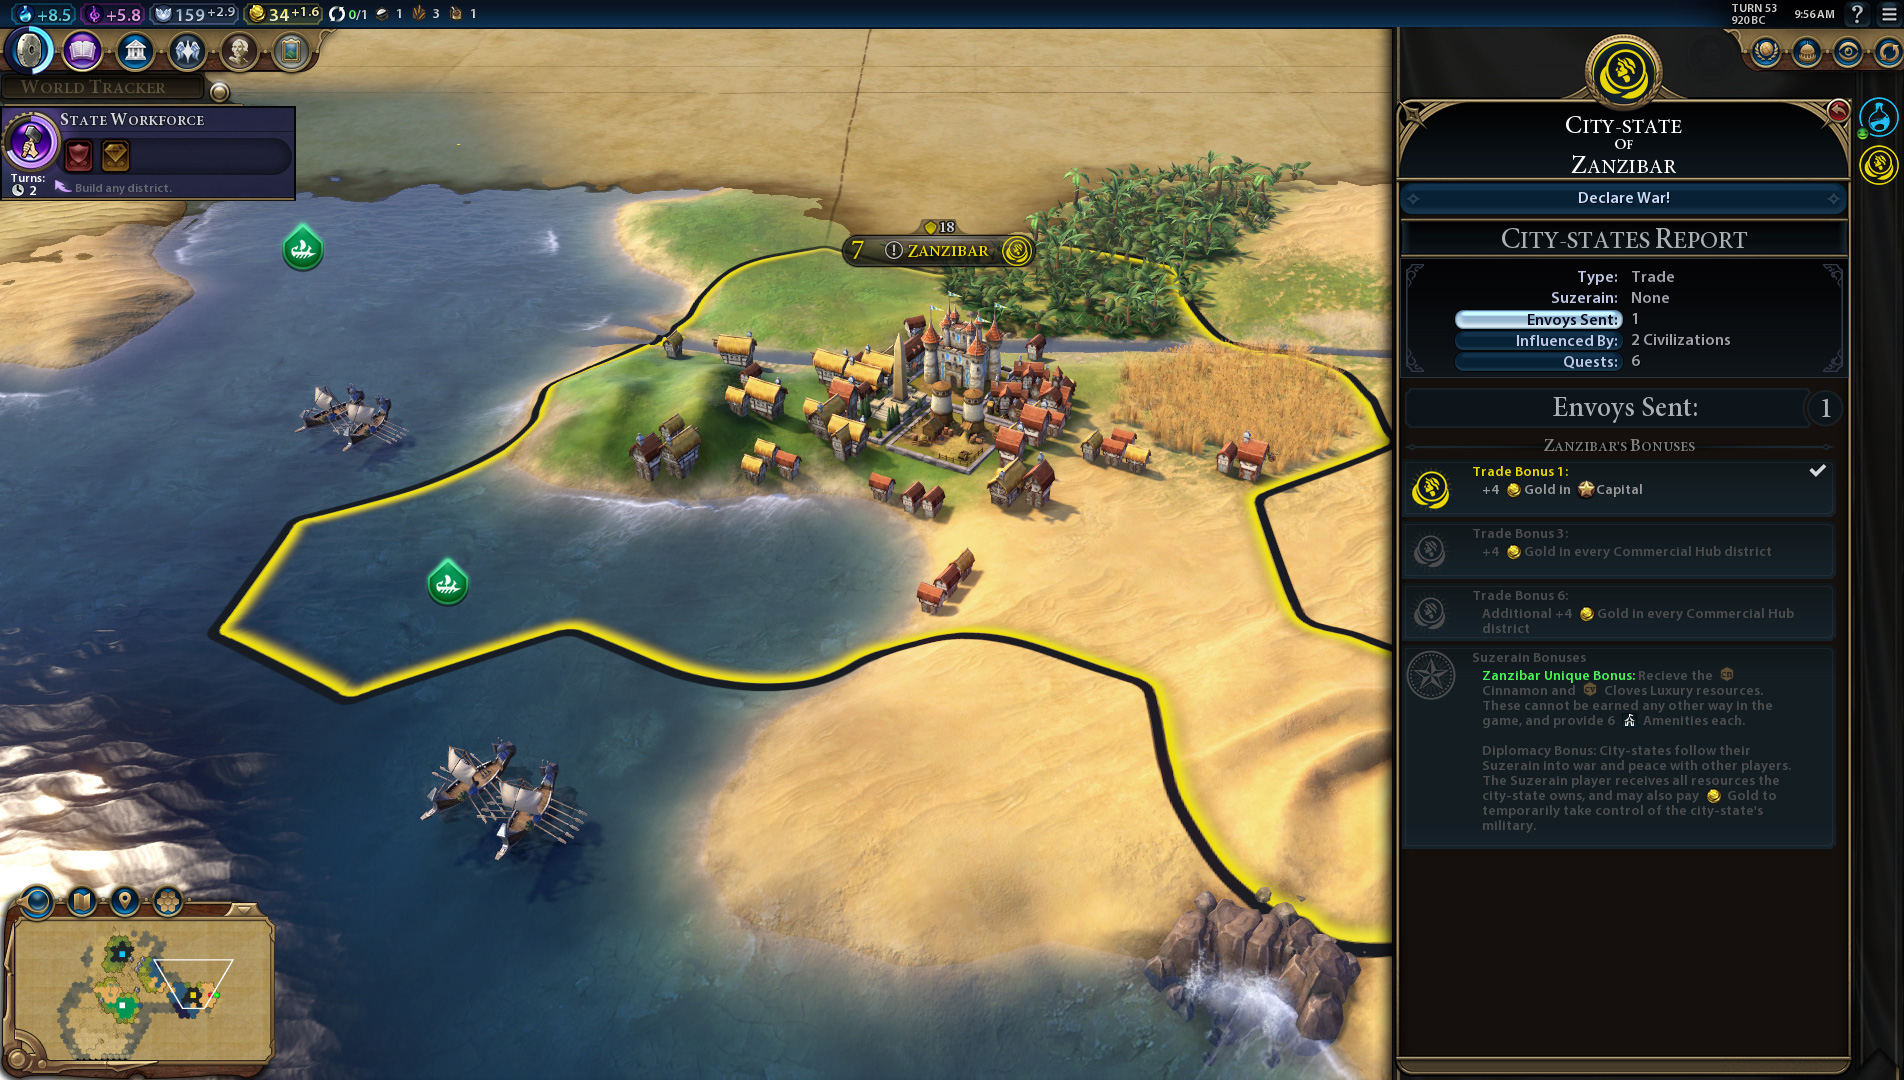 CivilizationVI_screenshot_city-state_zan